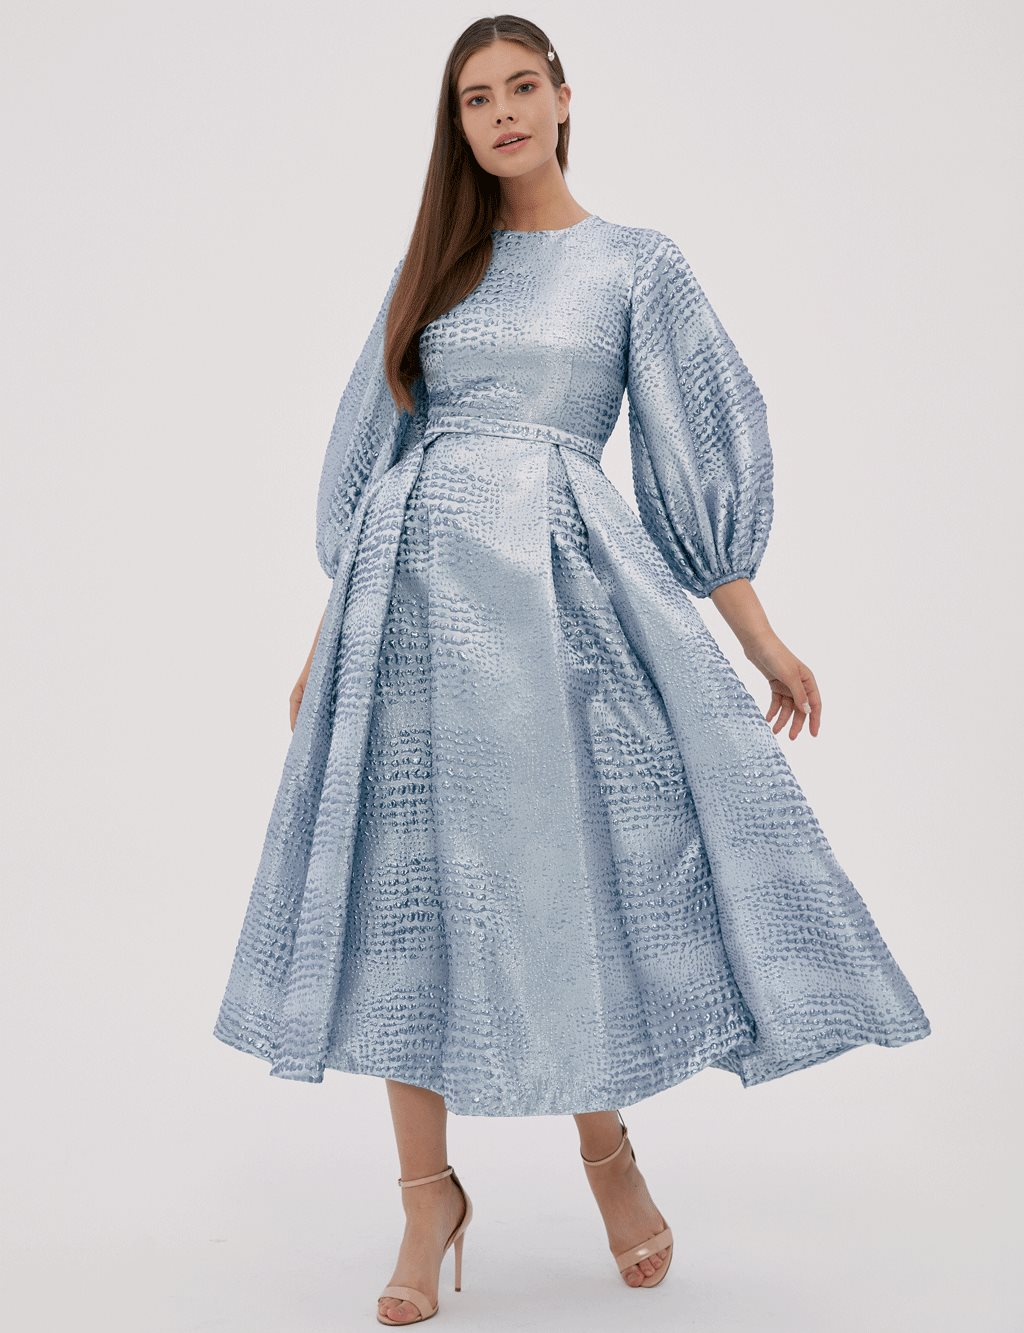 Puff Sleeve Baby Blue Dress A20 23005